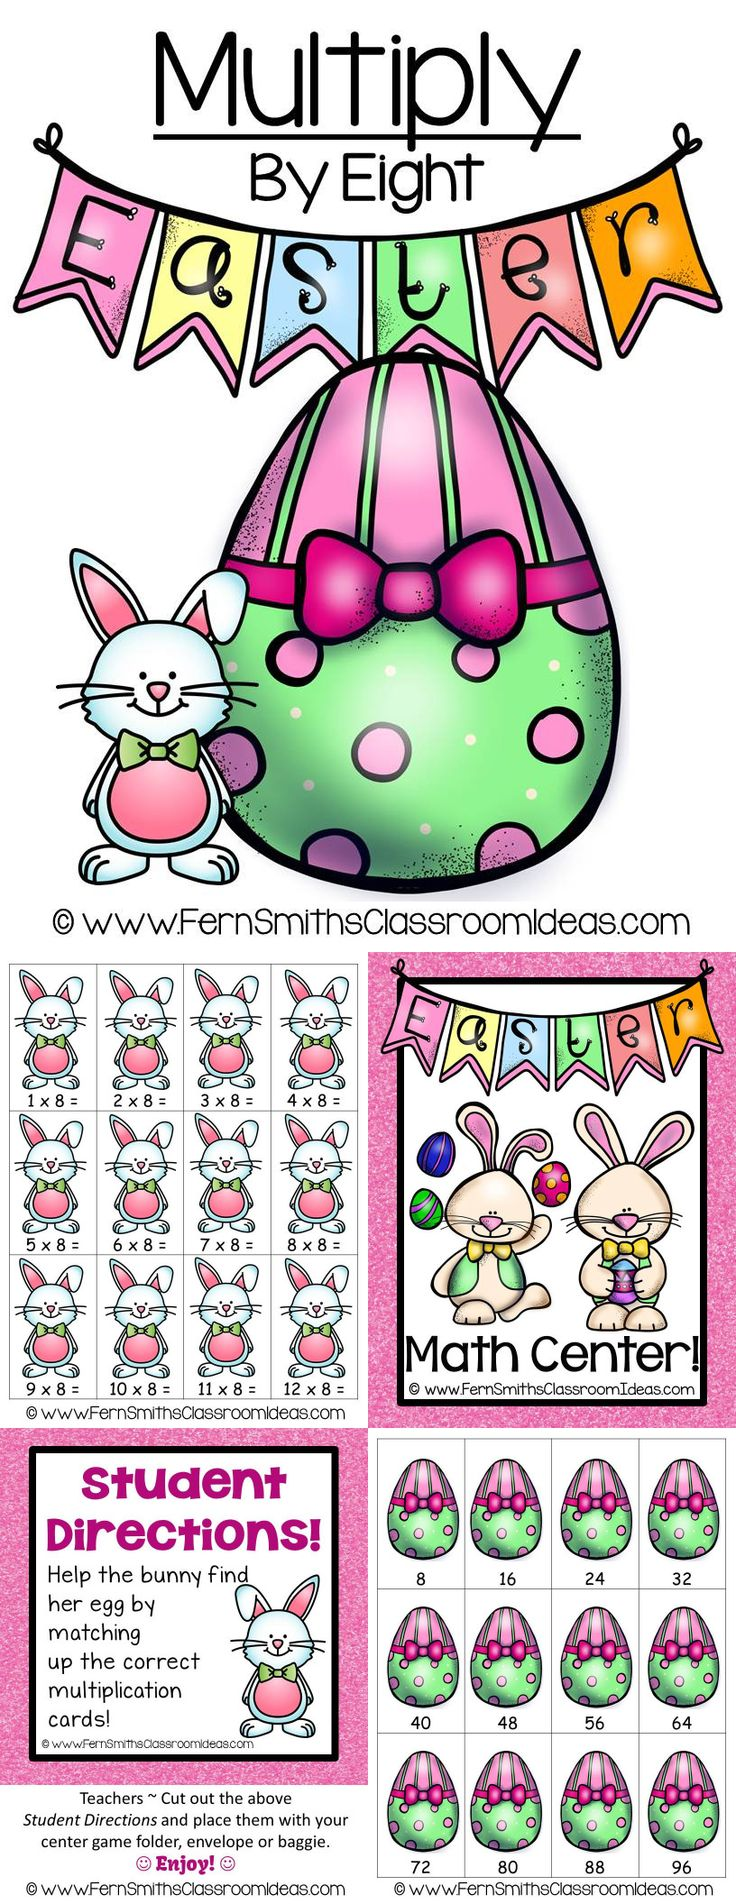 Quick and Easy to Make #Multiplication Center Game Multiply By Eight Concept for Easter #TPT $Paid #math